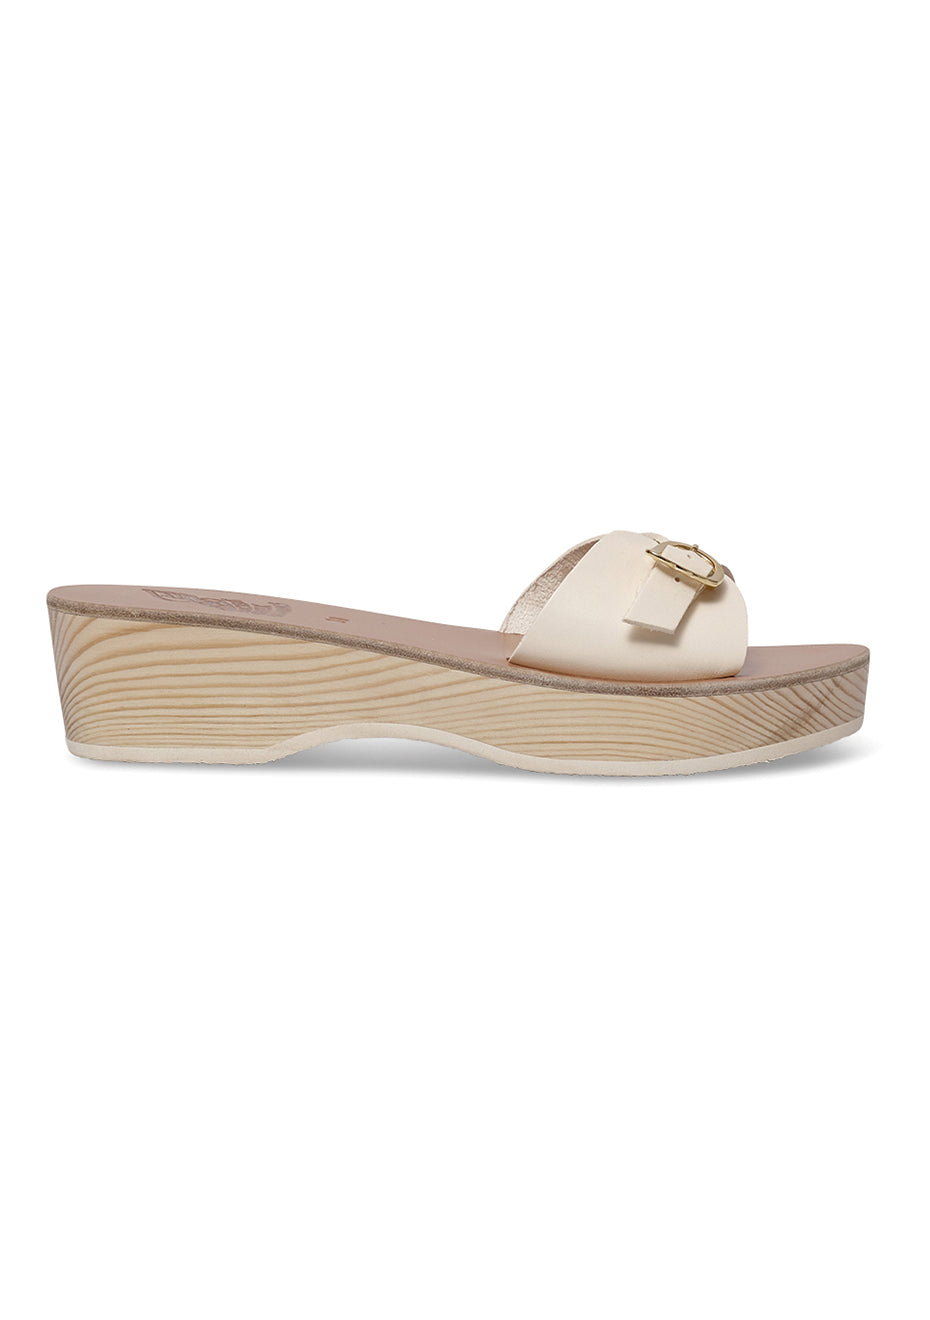 Filia Sabot Wedge Sandals